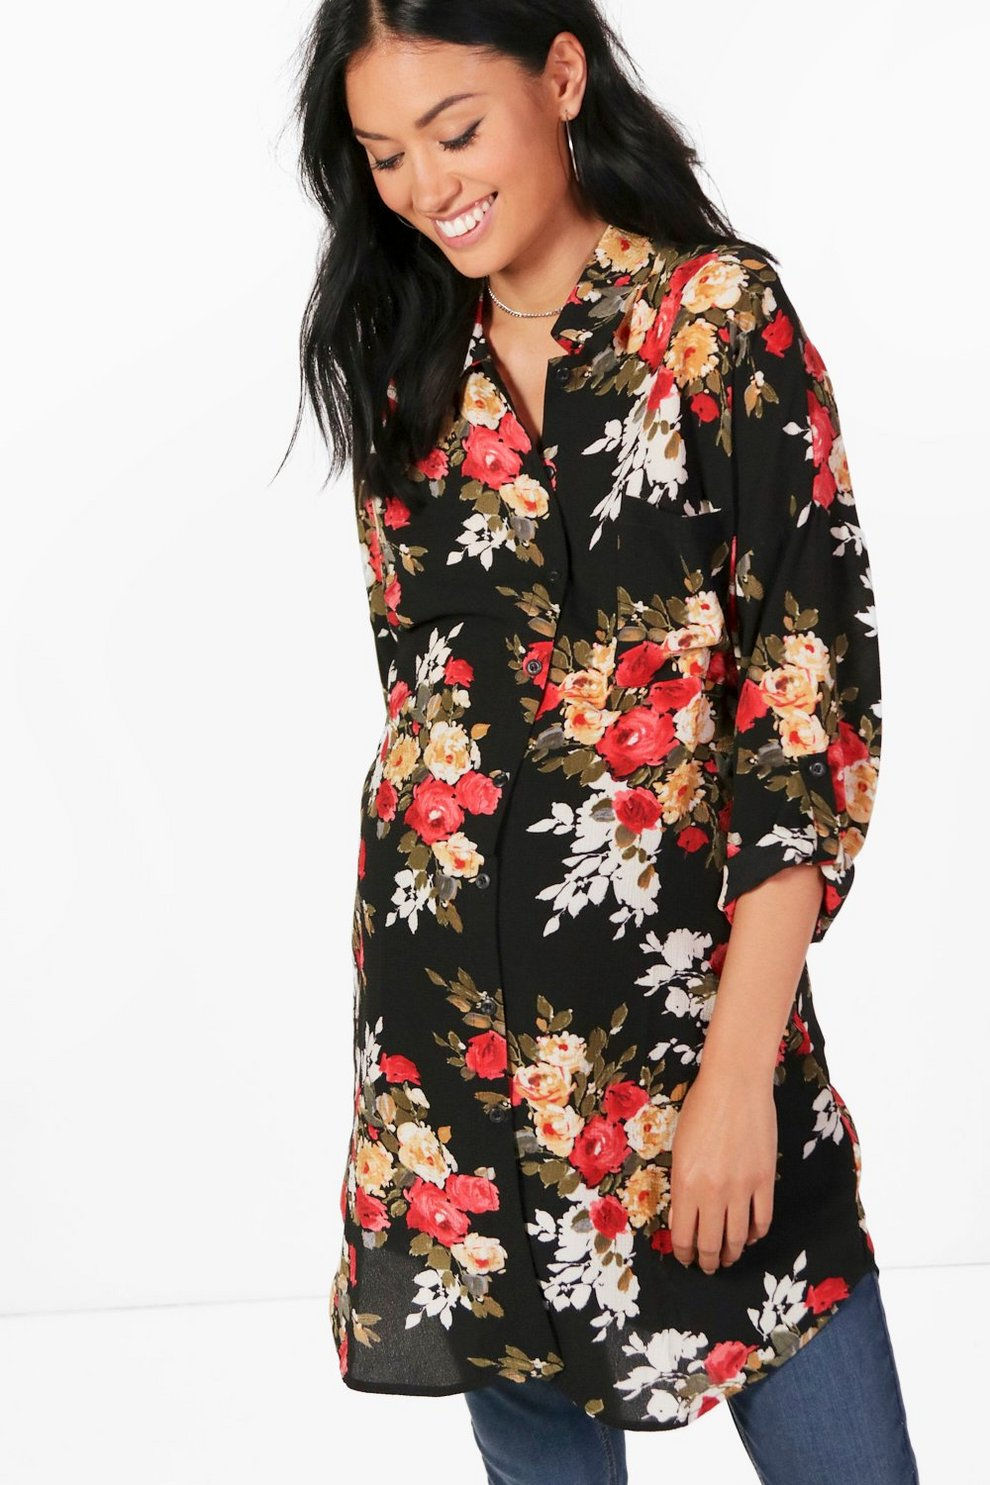 Image result for Maternity Neve Floral Printed Oversized Shirt